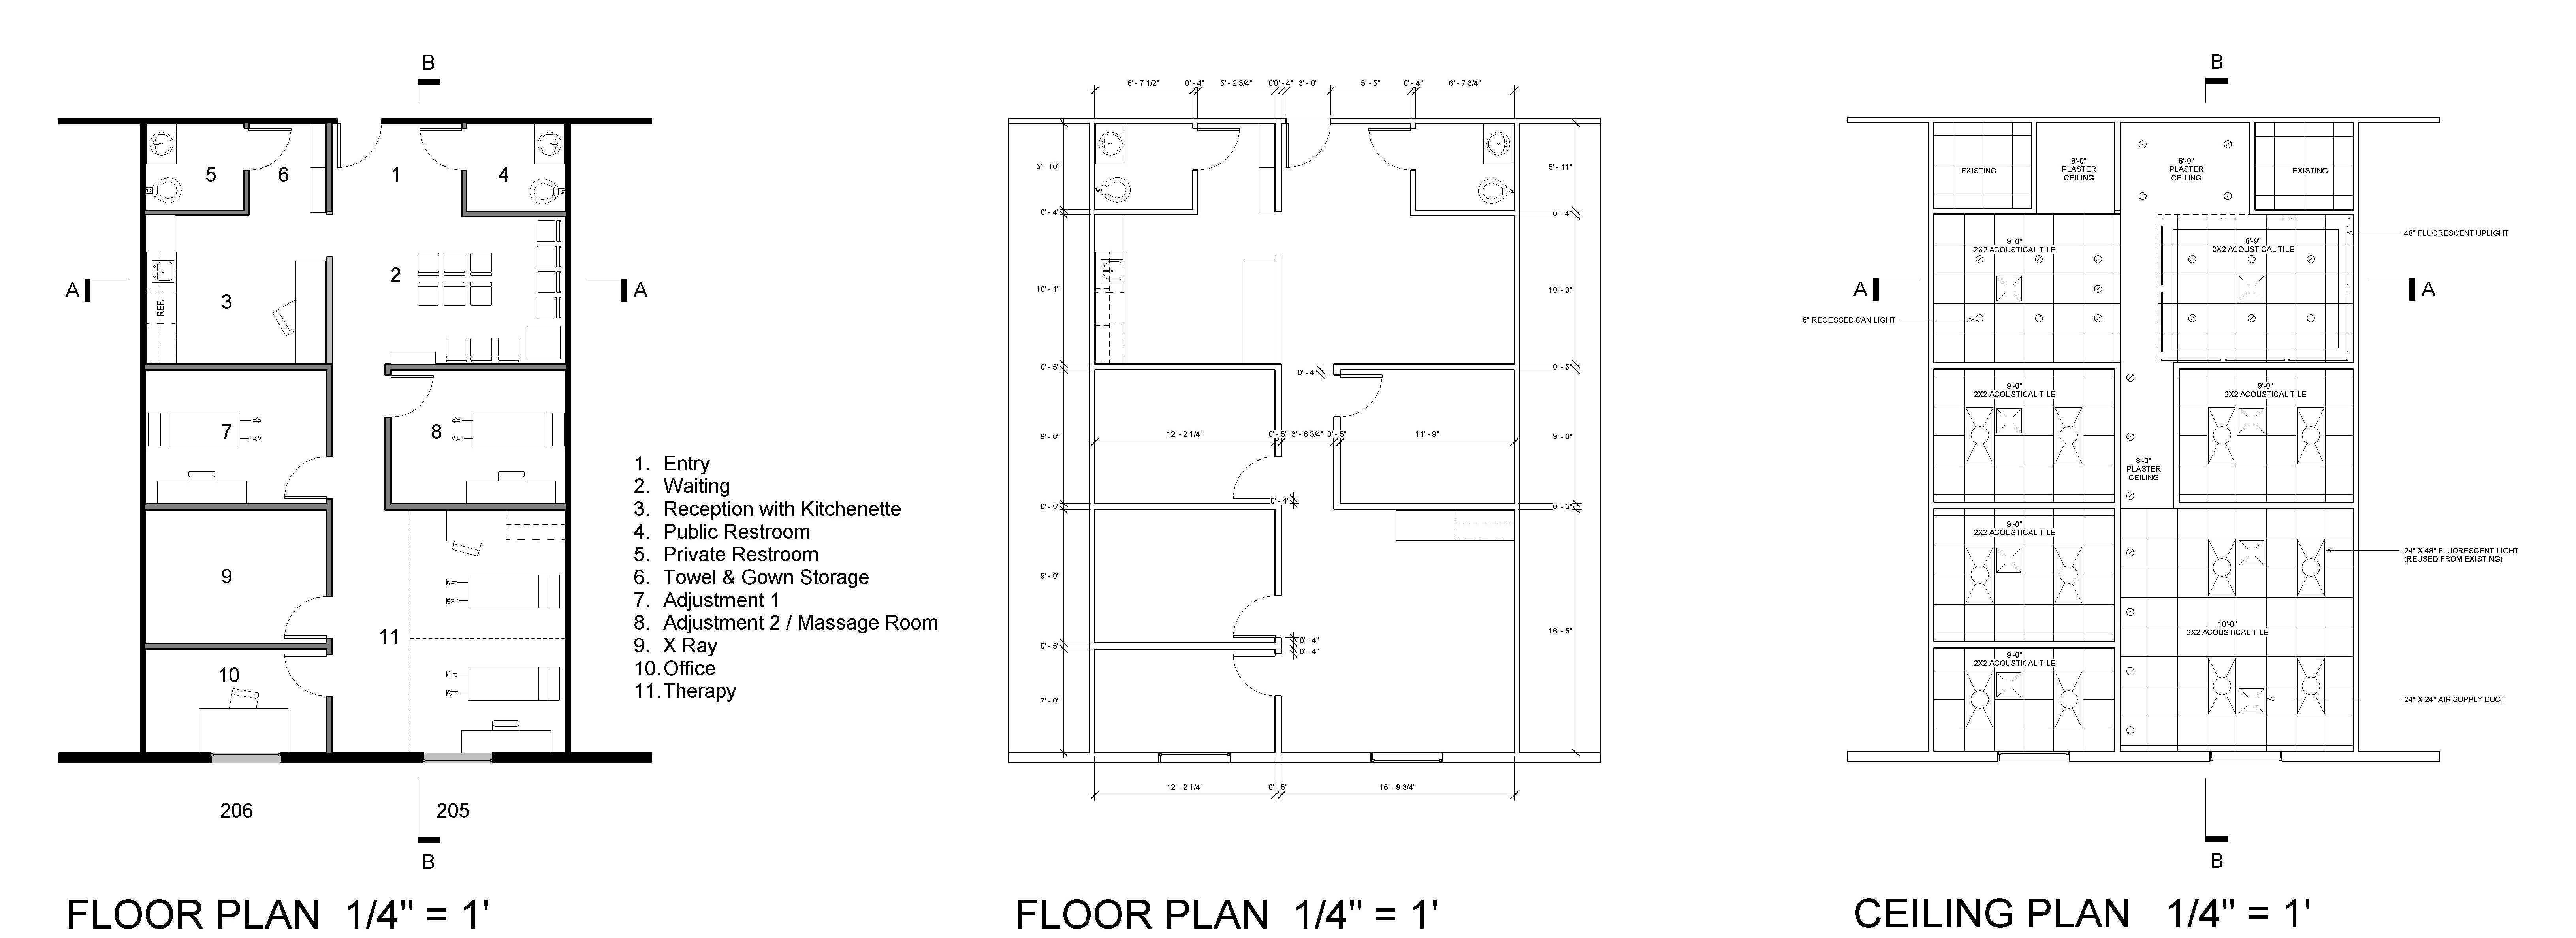 Chiropractic Office Floor Plans on Small Chiropractic Office Floor Plan